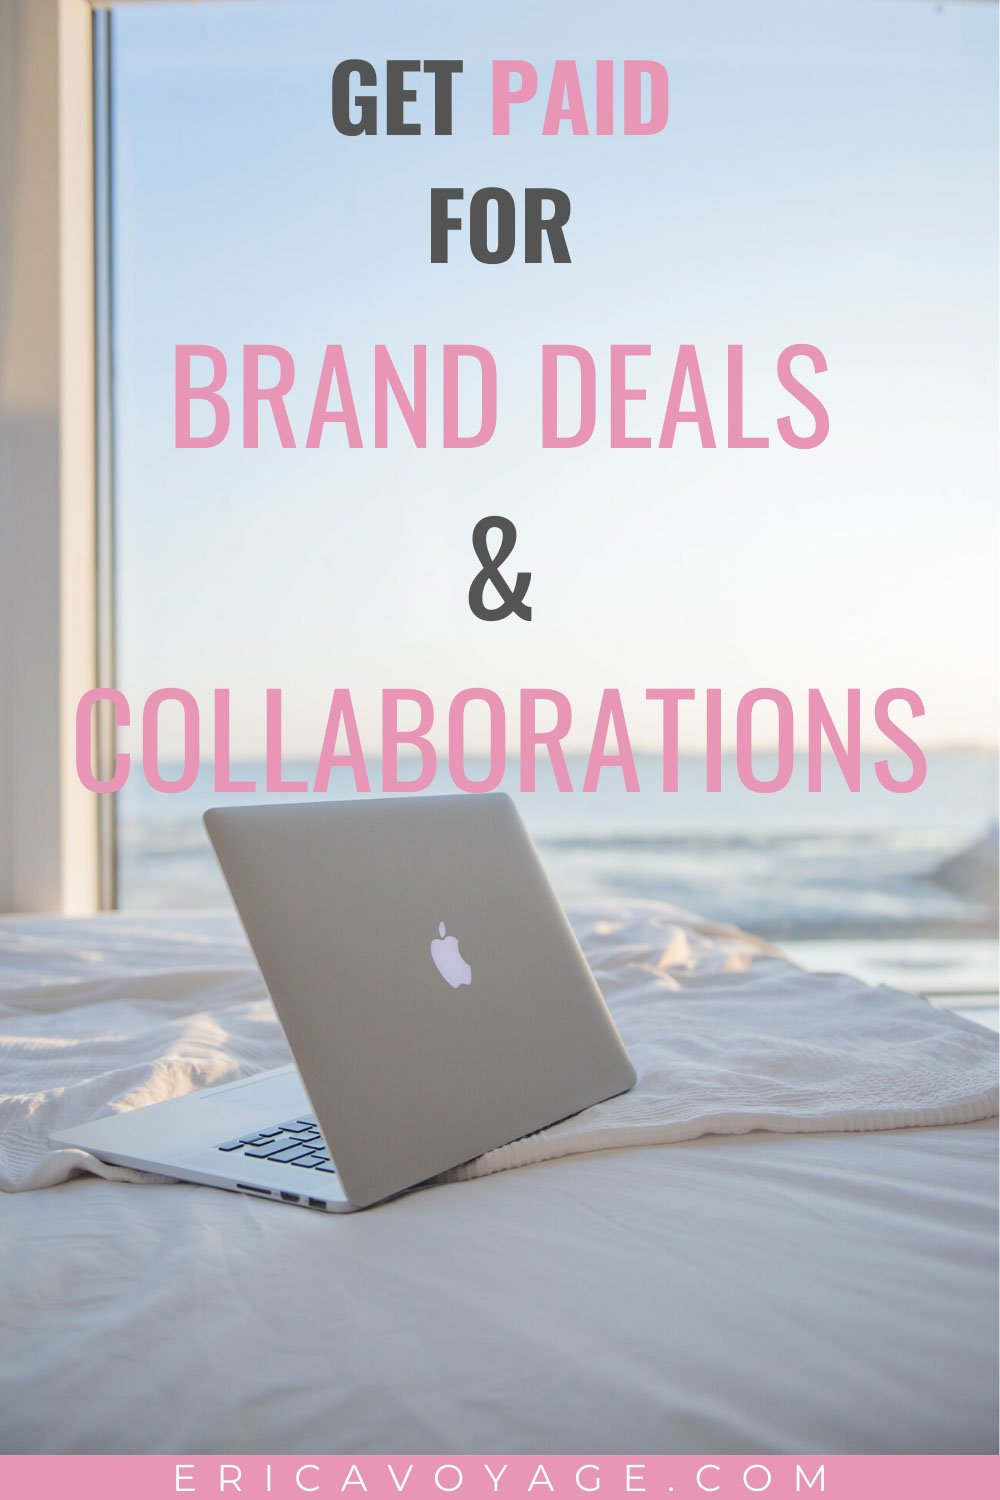 A guide to find brands to collaborate with. It explains how to directly pitch them a partnership opportunity. Read this is you are looking for brand deals.